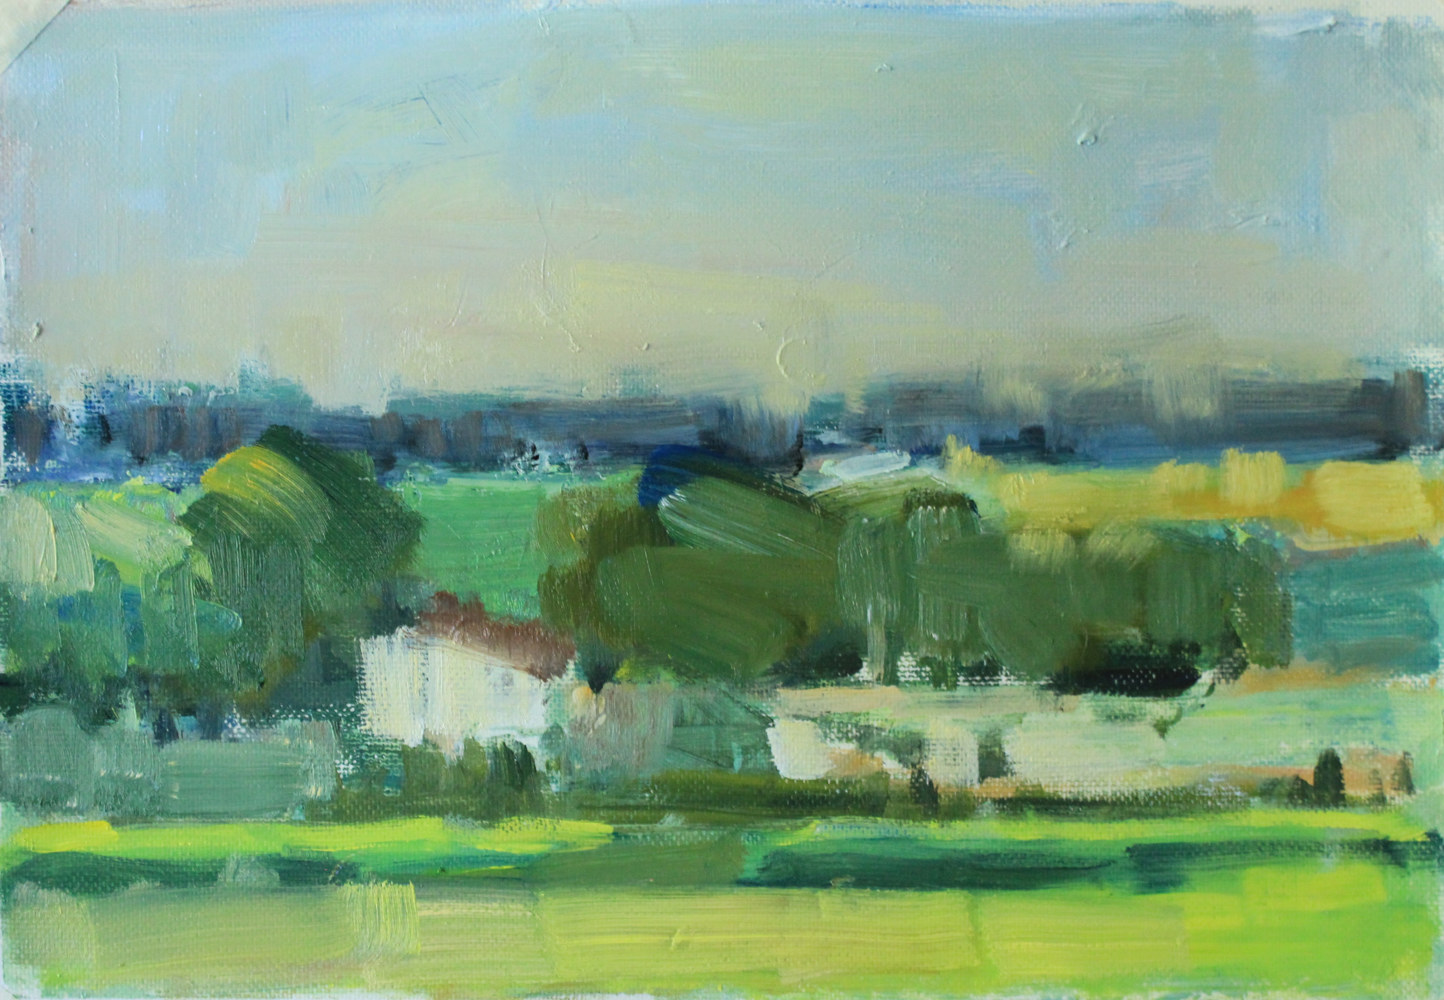 "Denmark Farm ll, oil on paper, 7 3/4"" x 11 1/4"" by Susan Horn"